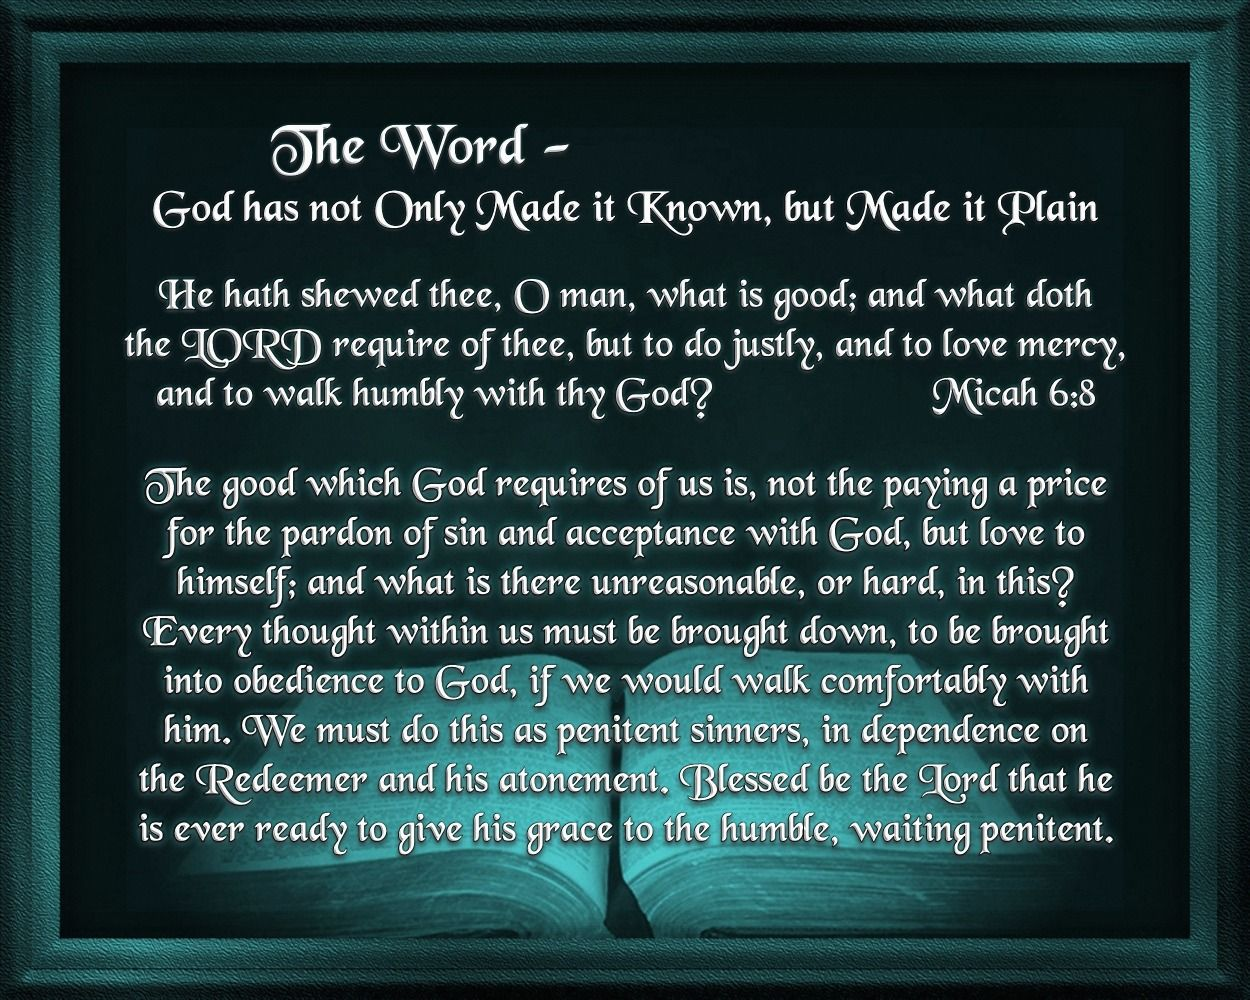 The Word God has not Only Made it Known, but Made it